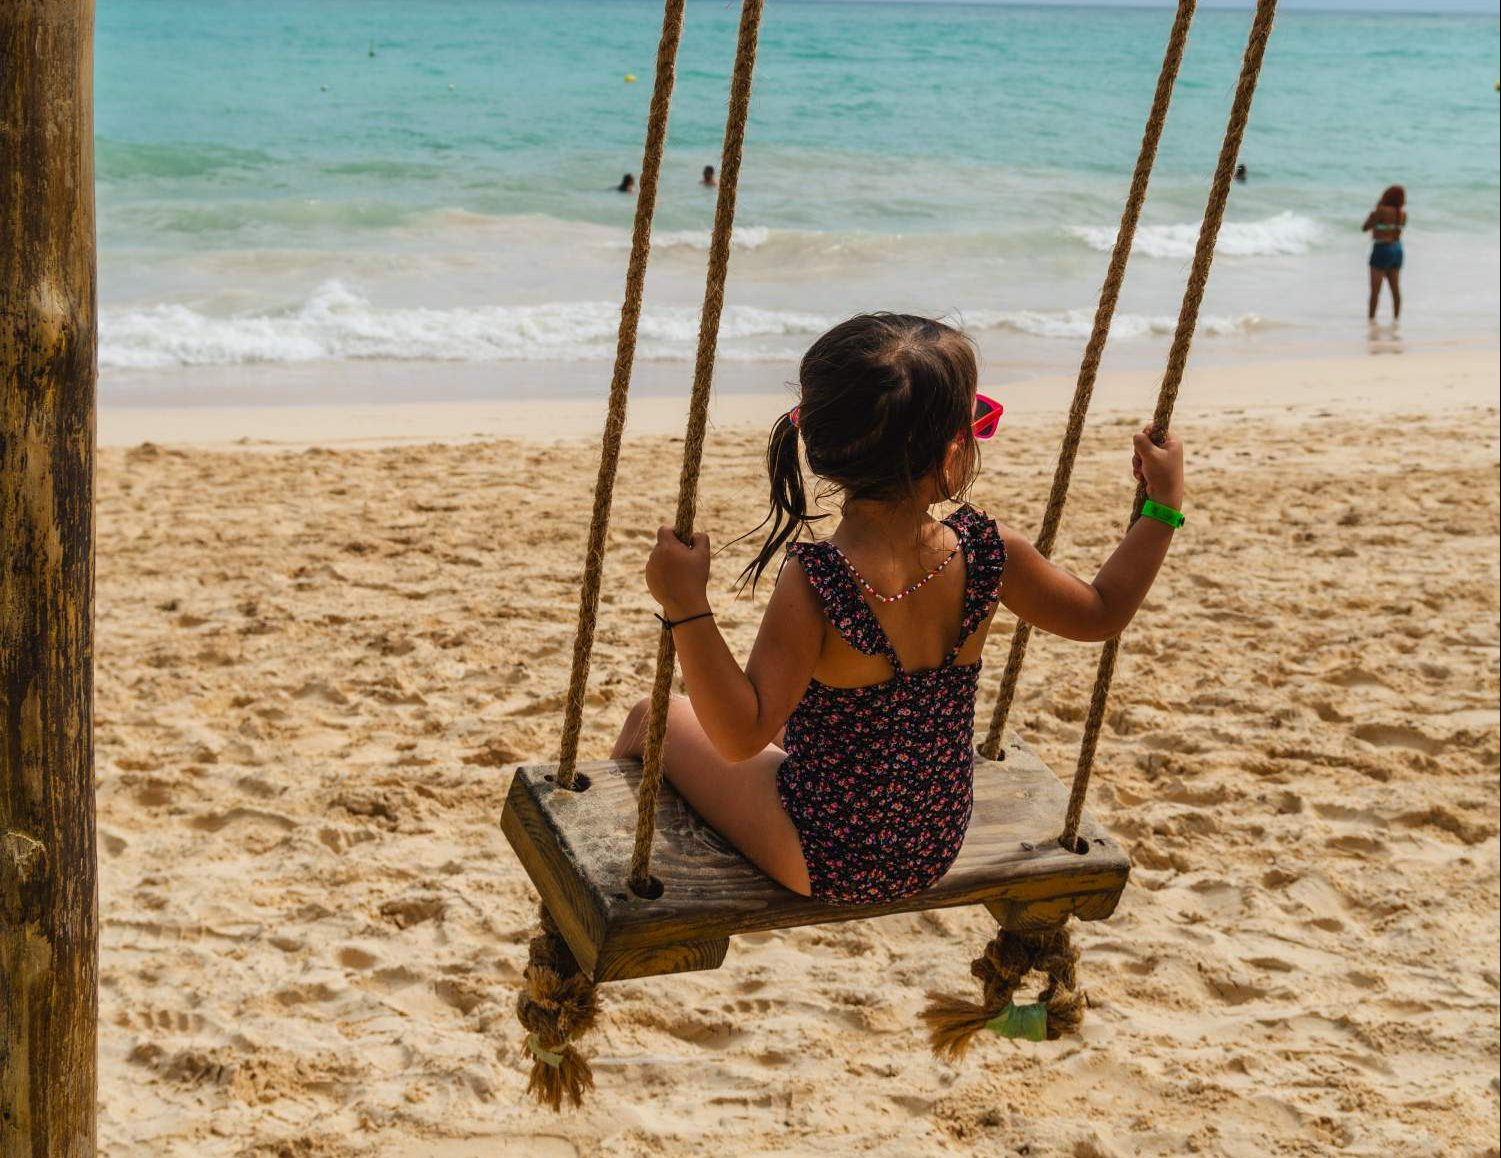 Swinging on the beach in Dominican Republic